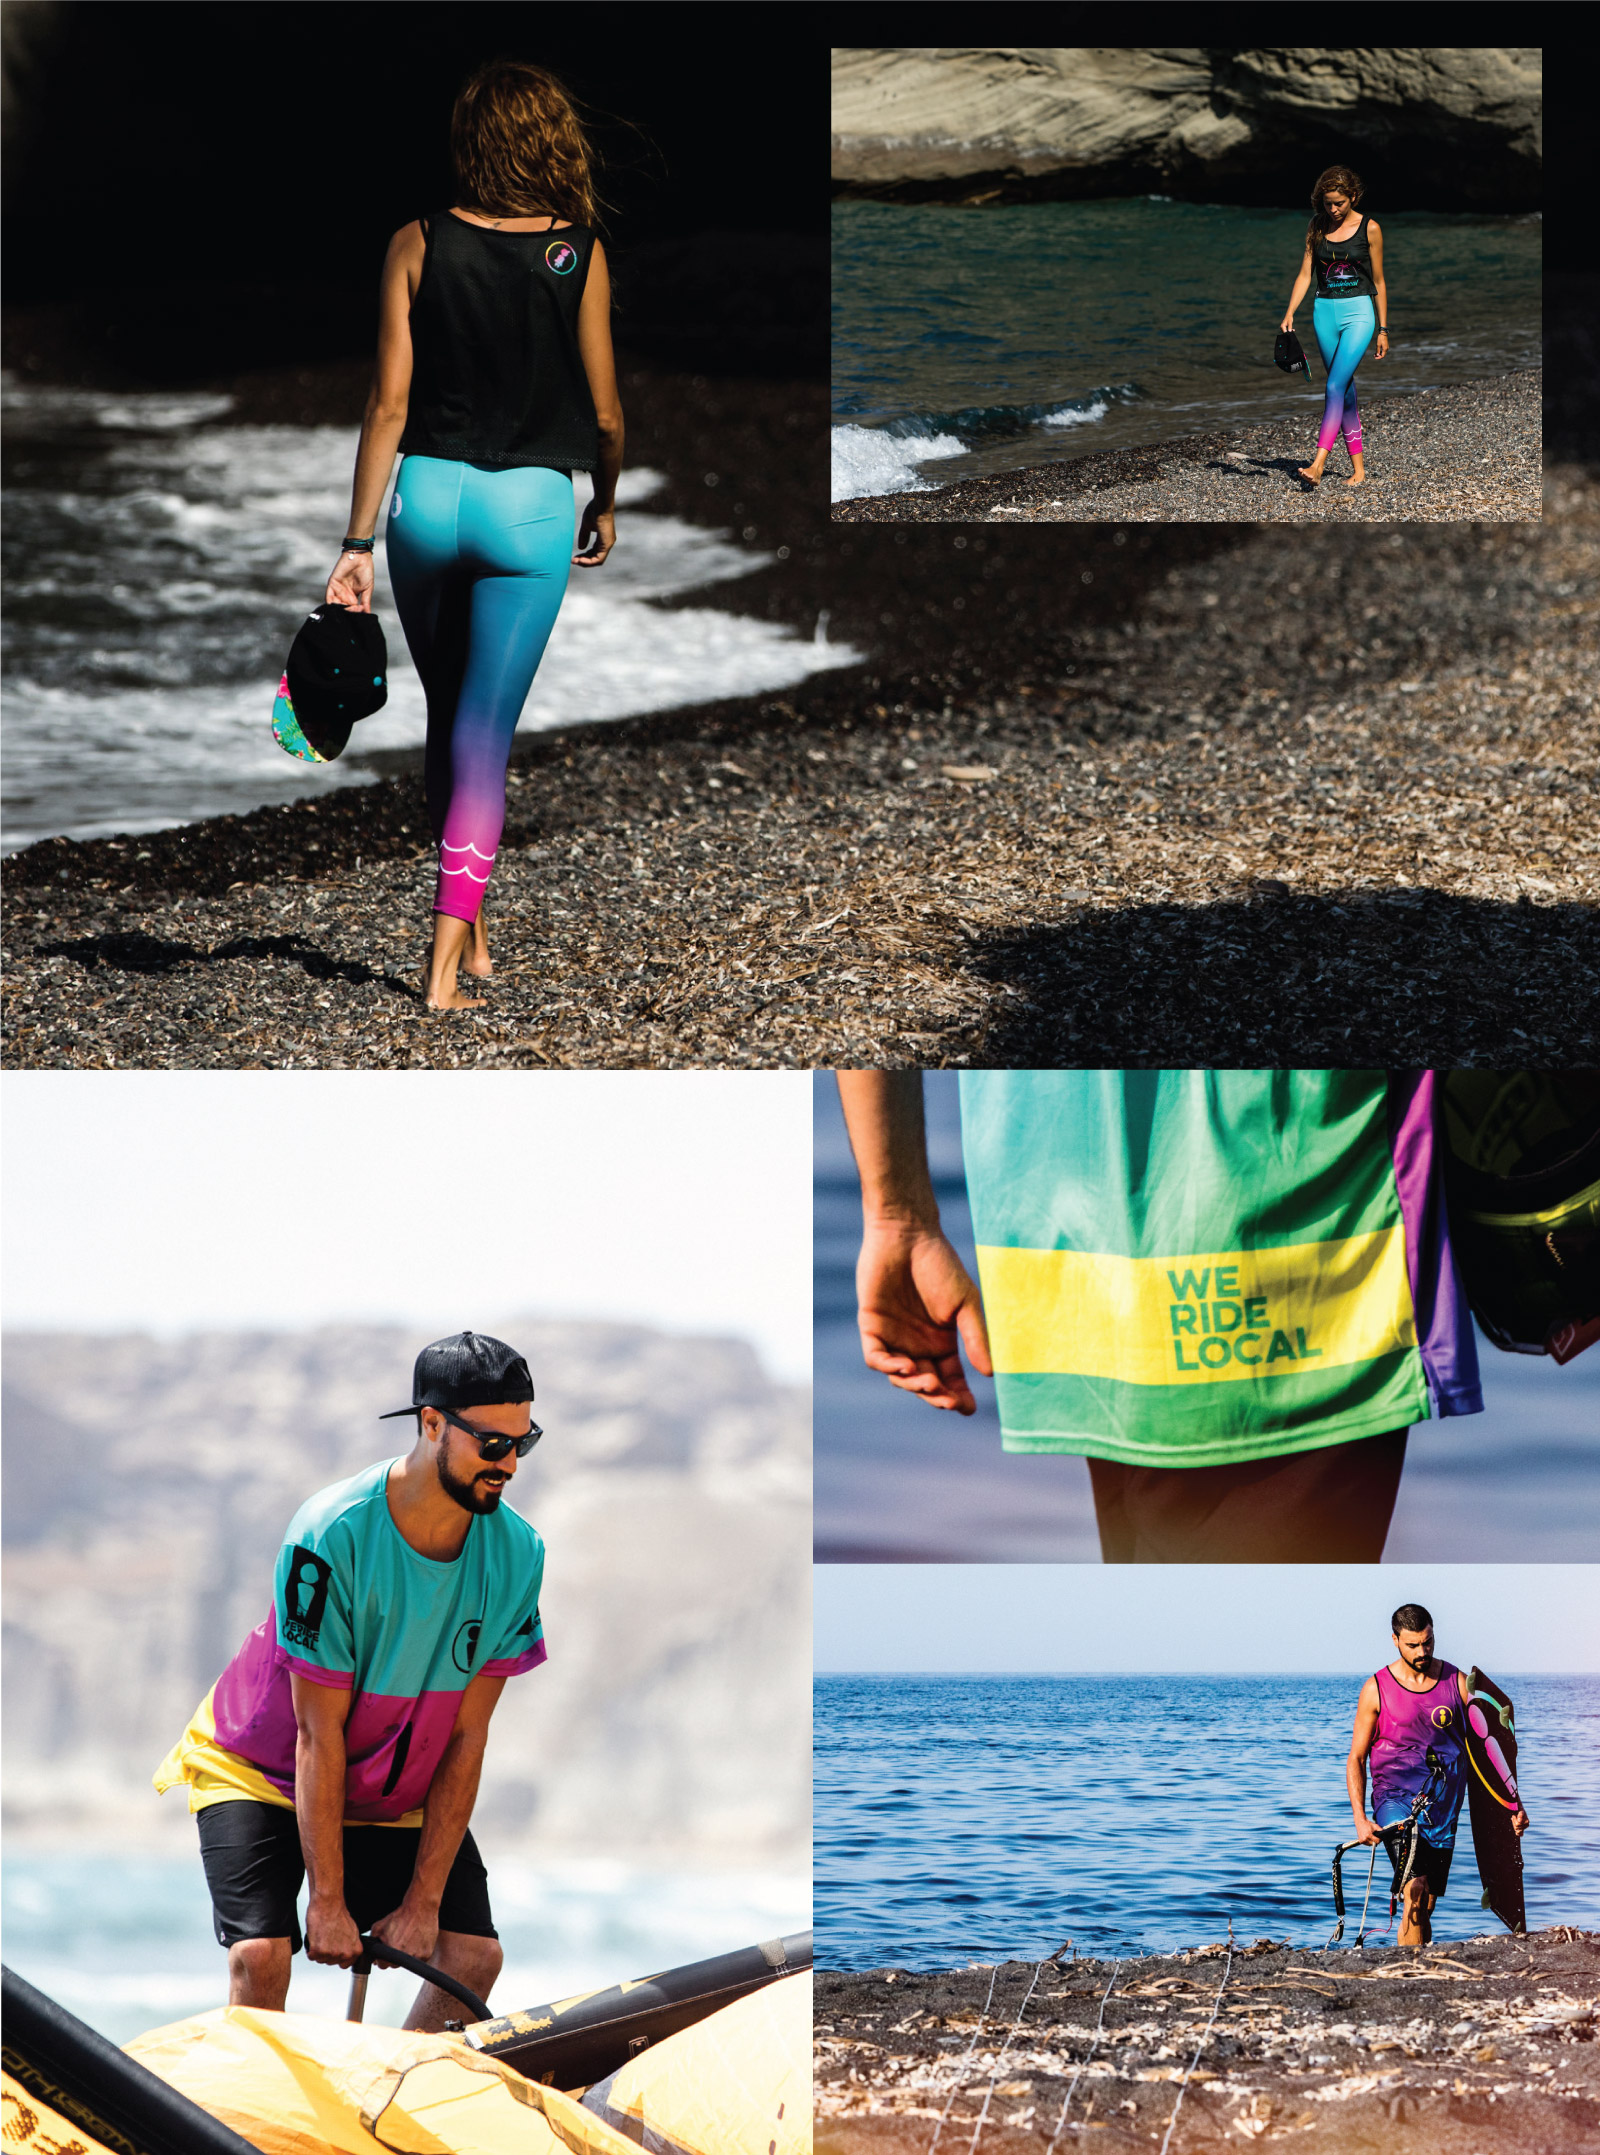 WWW.WERIDELOCAL.COM-WOMEN-SURF-YOGA-LEGGINS-LYCRA-MEN-RASH-GUARD-QUICKDRY-LOOSE-T-SHIRT